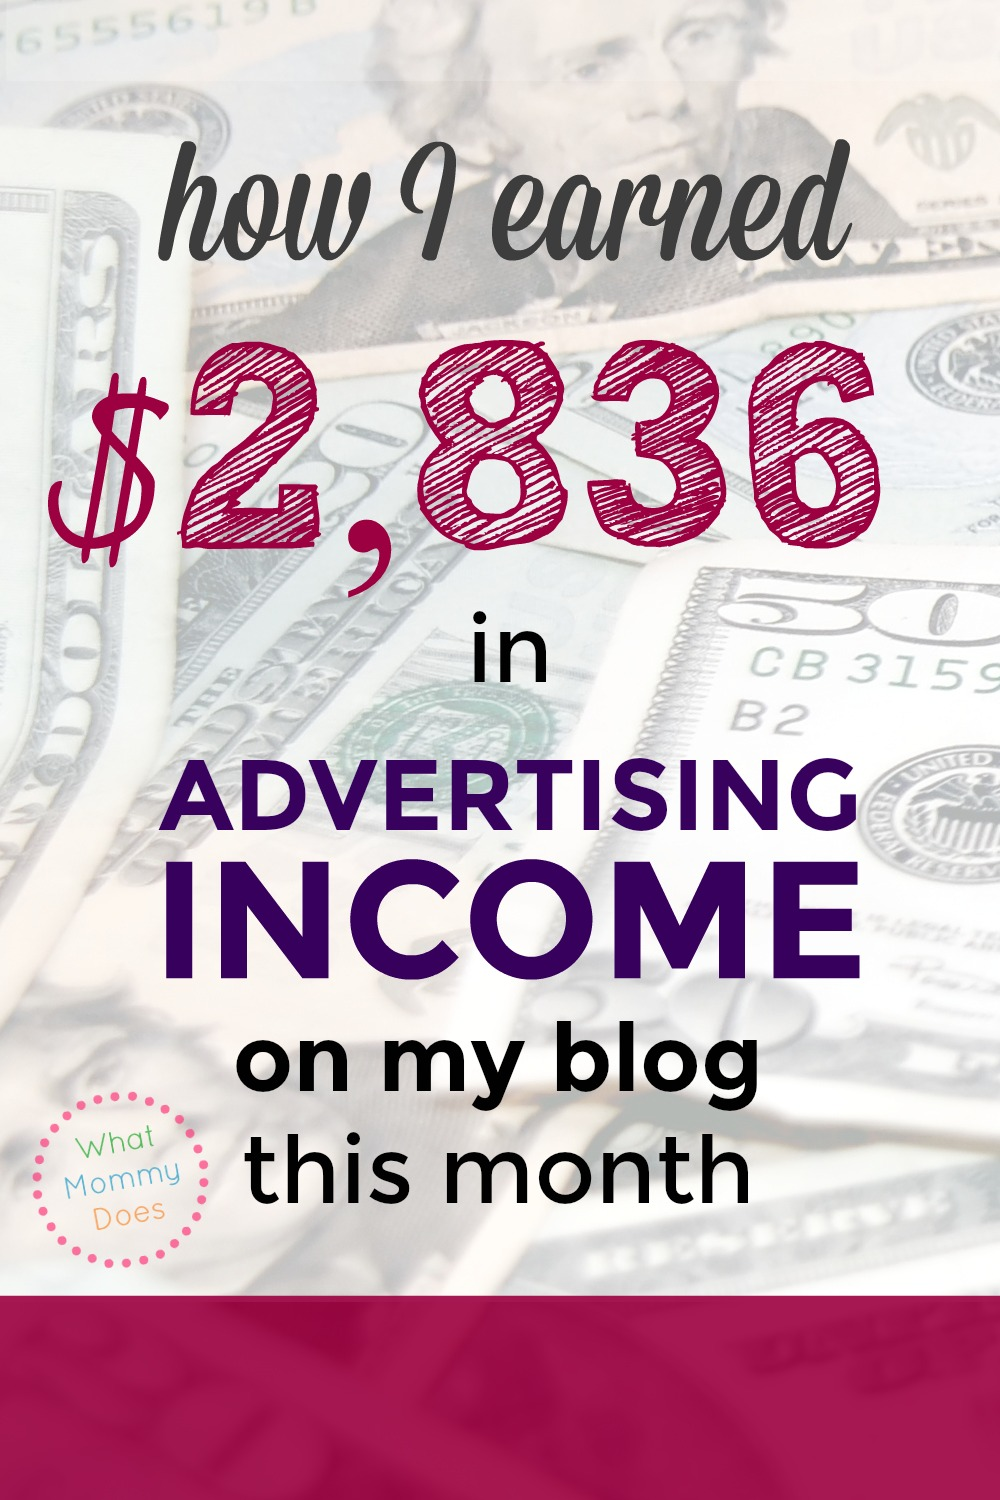 If you want to make money blogging, this is a great income report to read - she goes over her 4 main income streams, including $2,836 from ads and $2,688 in affiliate income. She makes a full time income and I've learned so many things from her income reports! Make sure to read this if you want your blog to make real money! You'll be glad you did. | money making blog ideas, blogging tutorials, blog tips, earn extra money from home